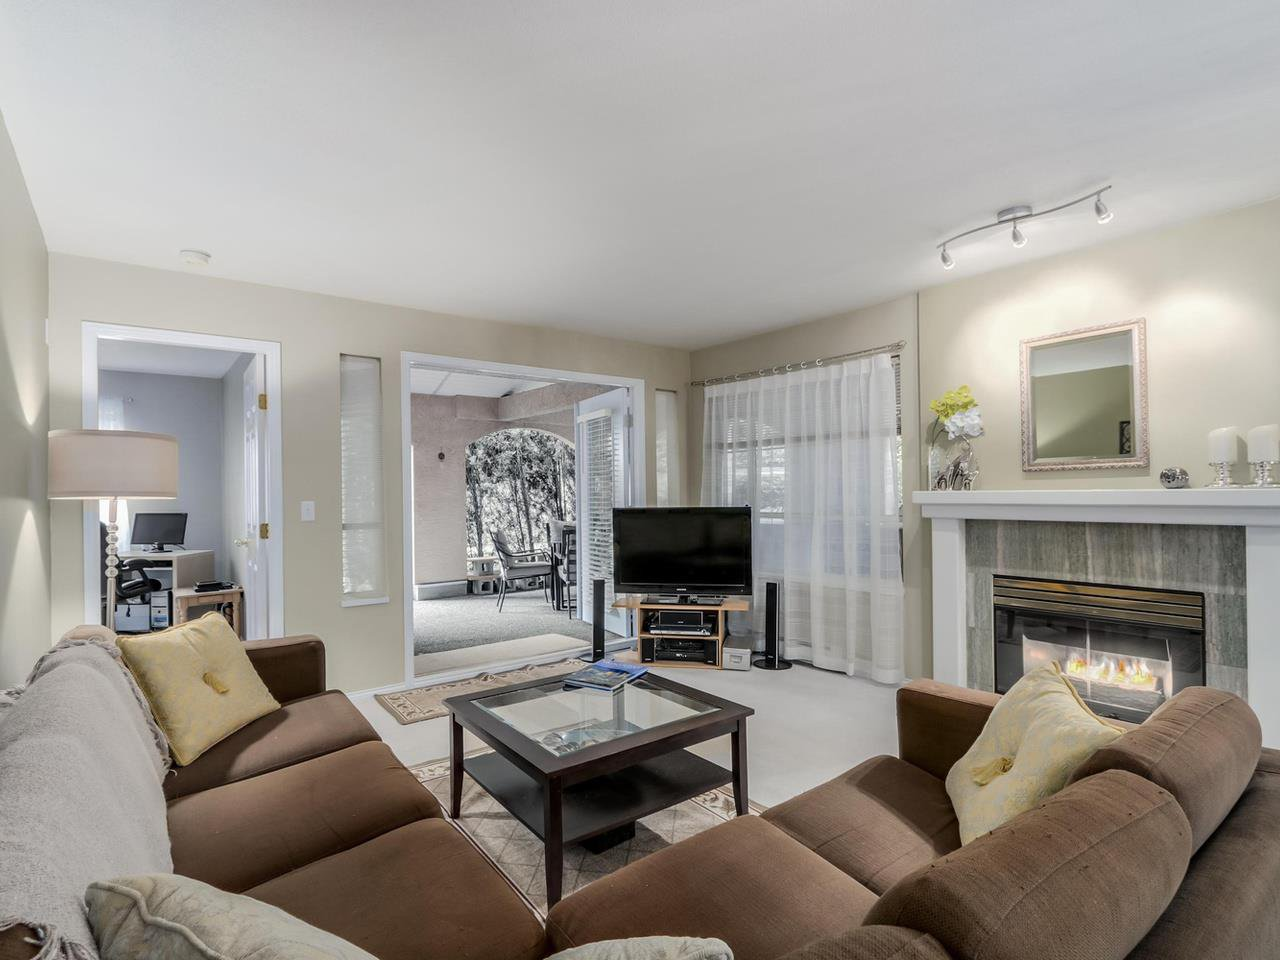 Photo 4: Photos: 107 515 WHITING Way in Coquitlam: Coquitlam West Condo for sale : MLS®# R2073119